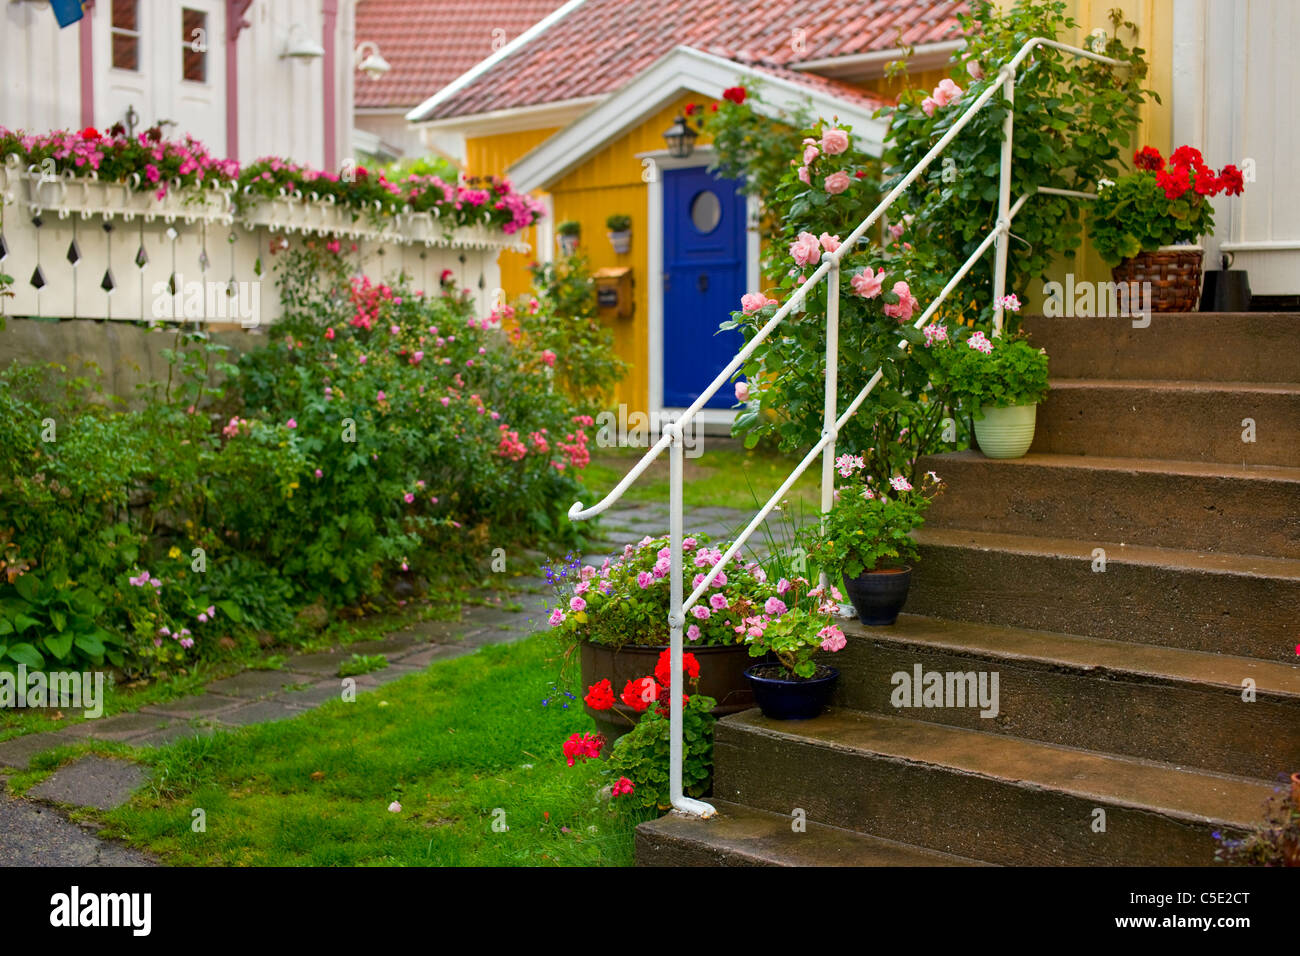 Stairways to the beautiful garden with house in the background - Stock Image